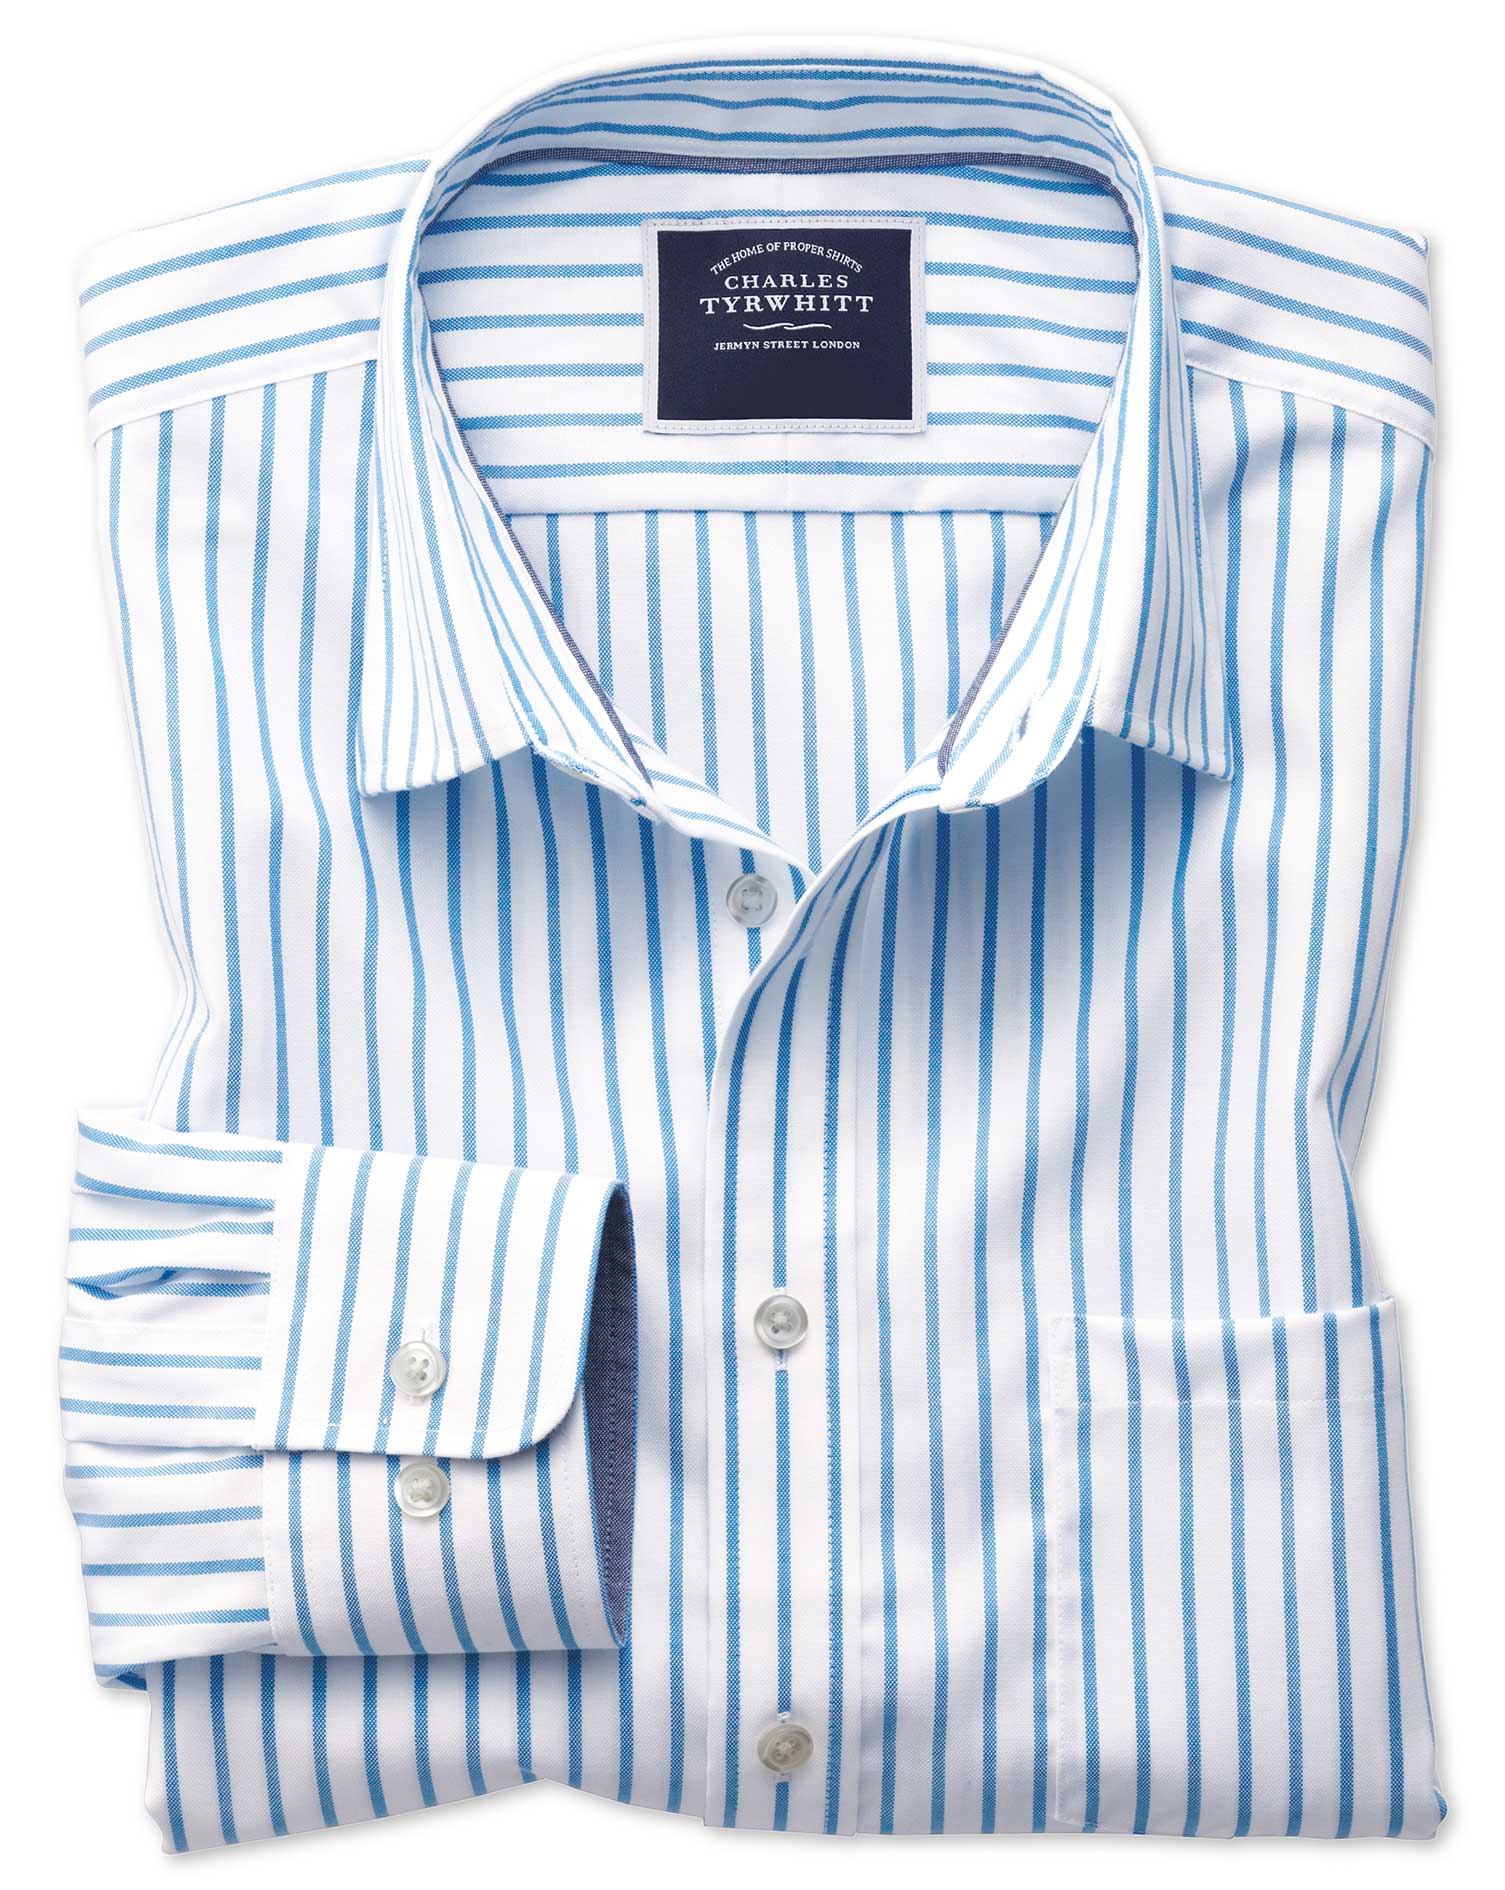 Classic Fit Non-Iron Oxford White and Blue Stripe Cotton Shirt Single Cuff Size Small by Charles Tyr